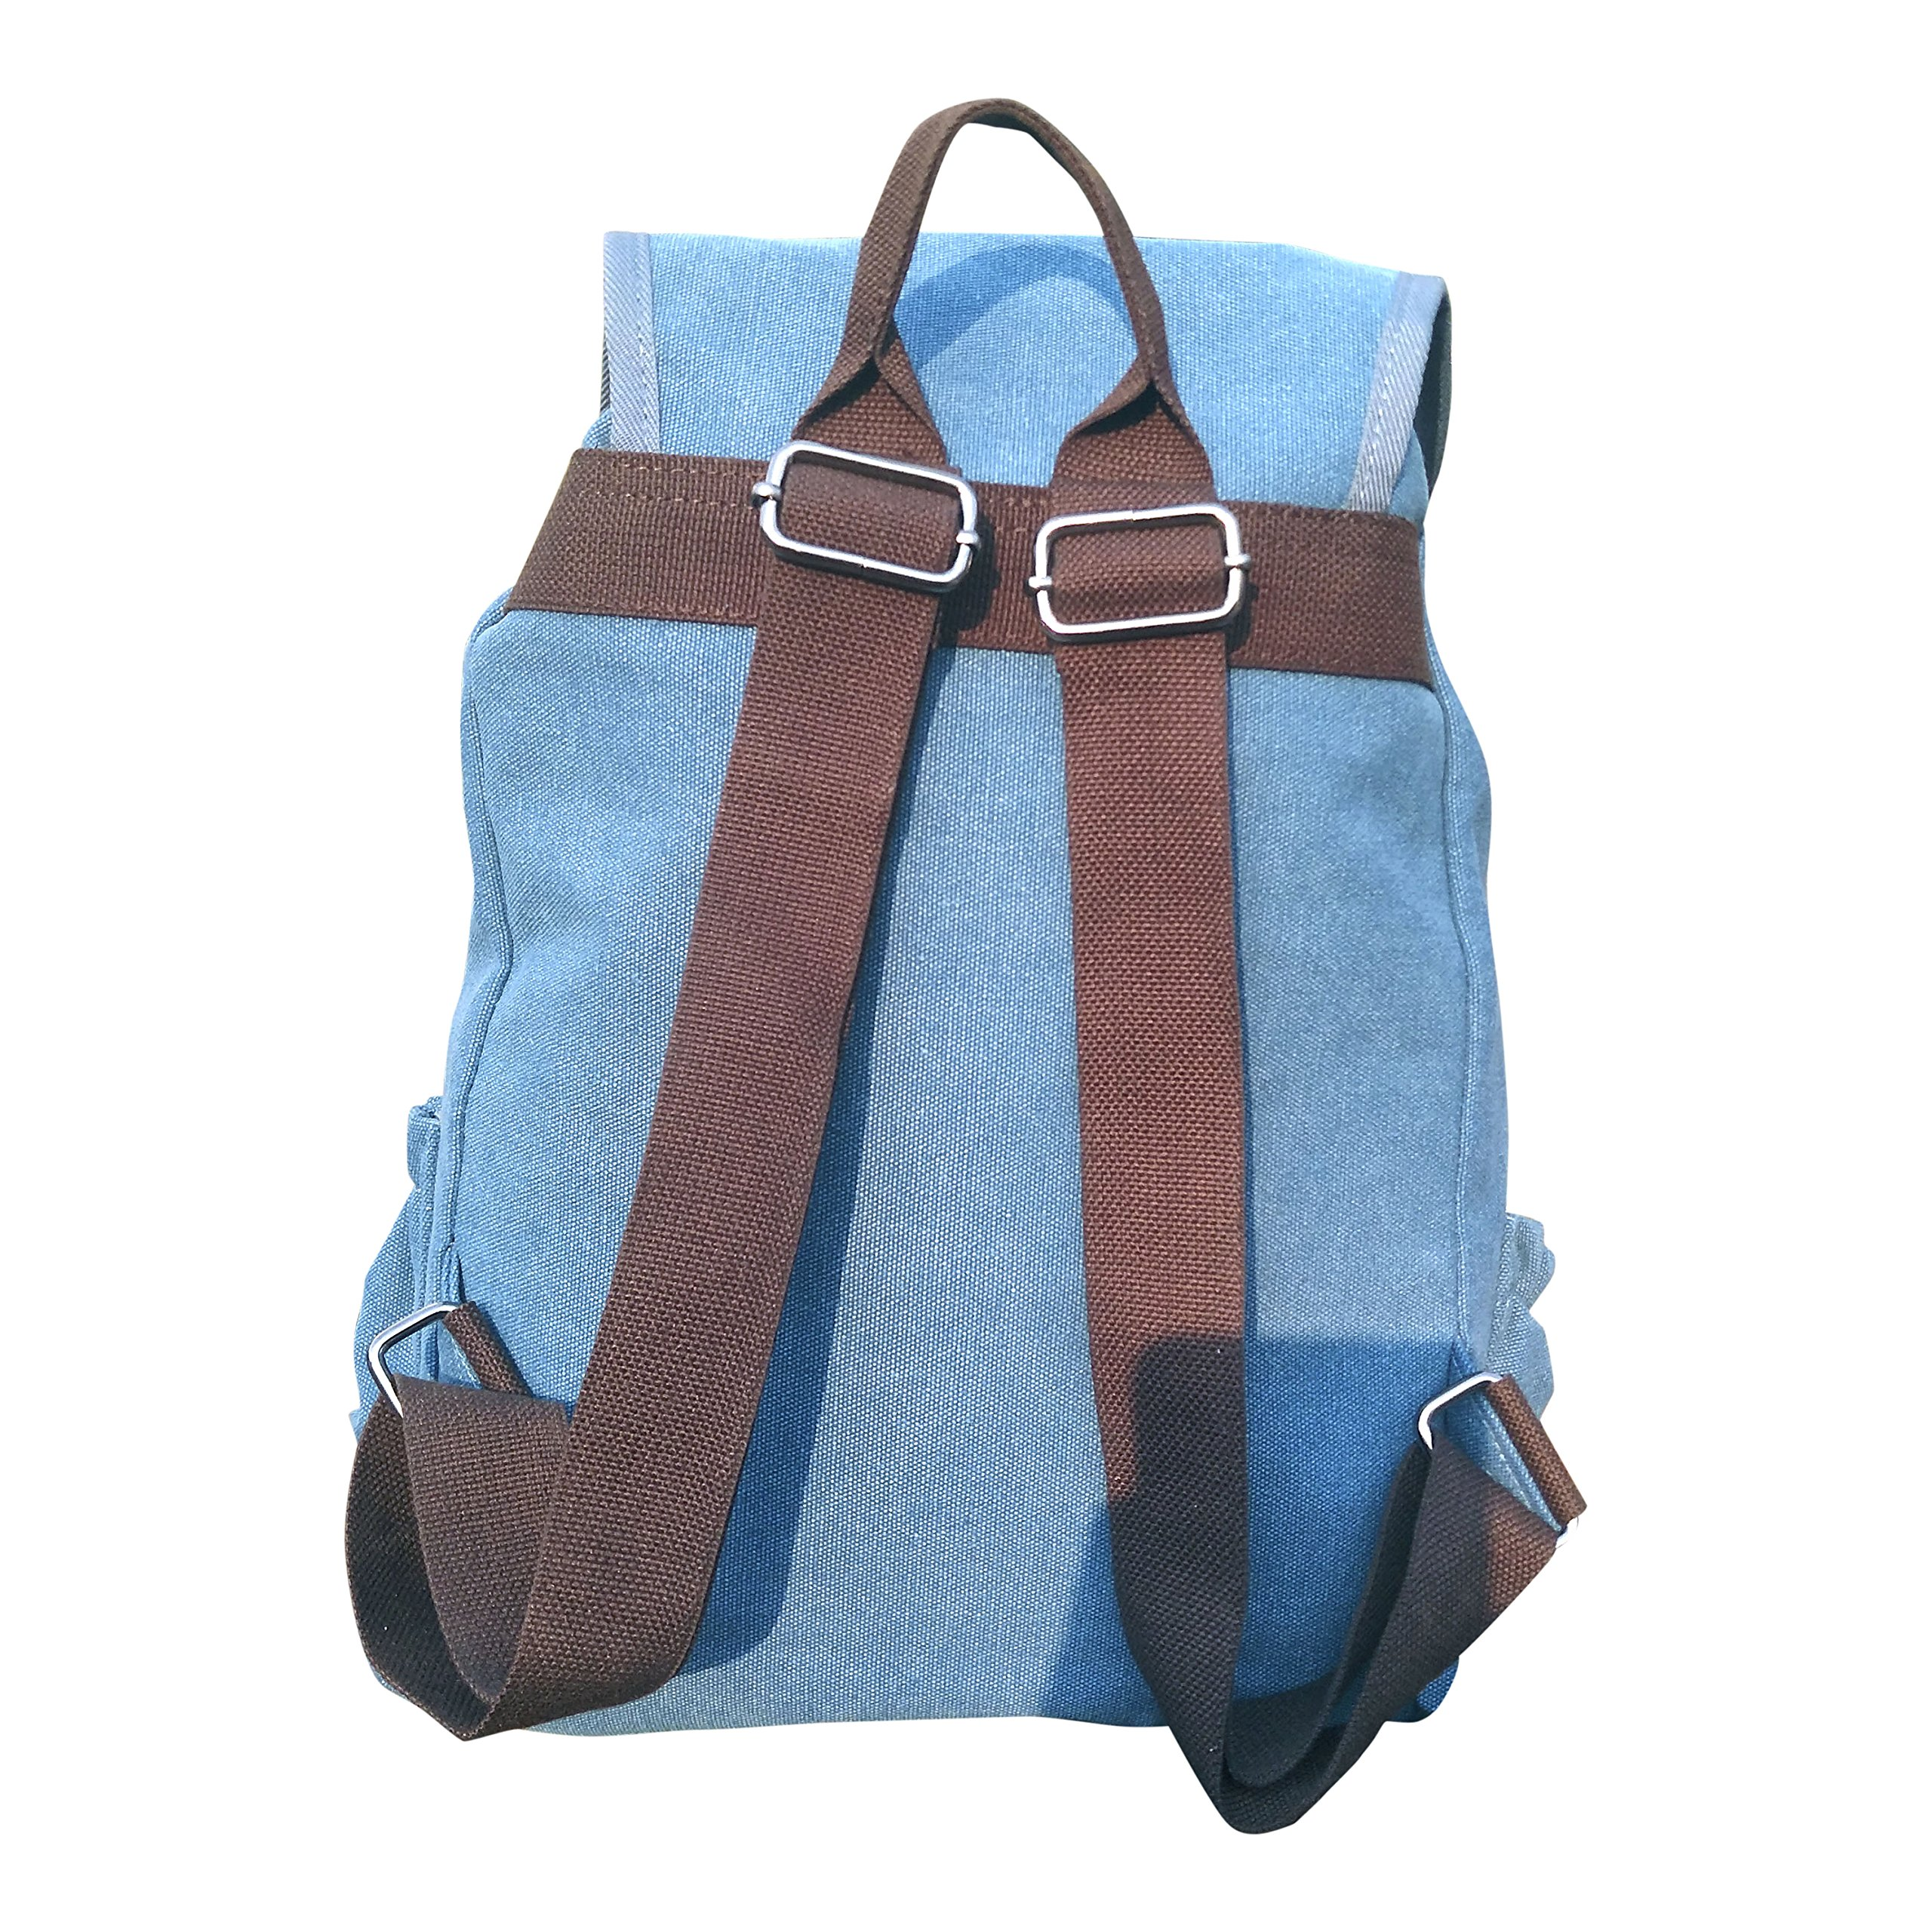 Classic Canvas Backpack for Hiking Camping Backpacking Trekking (Blue)